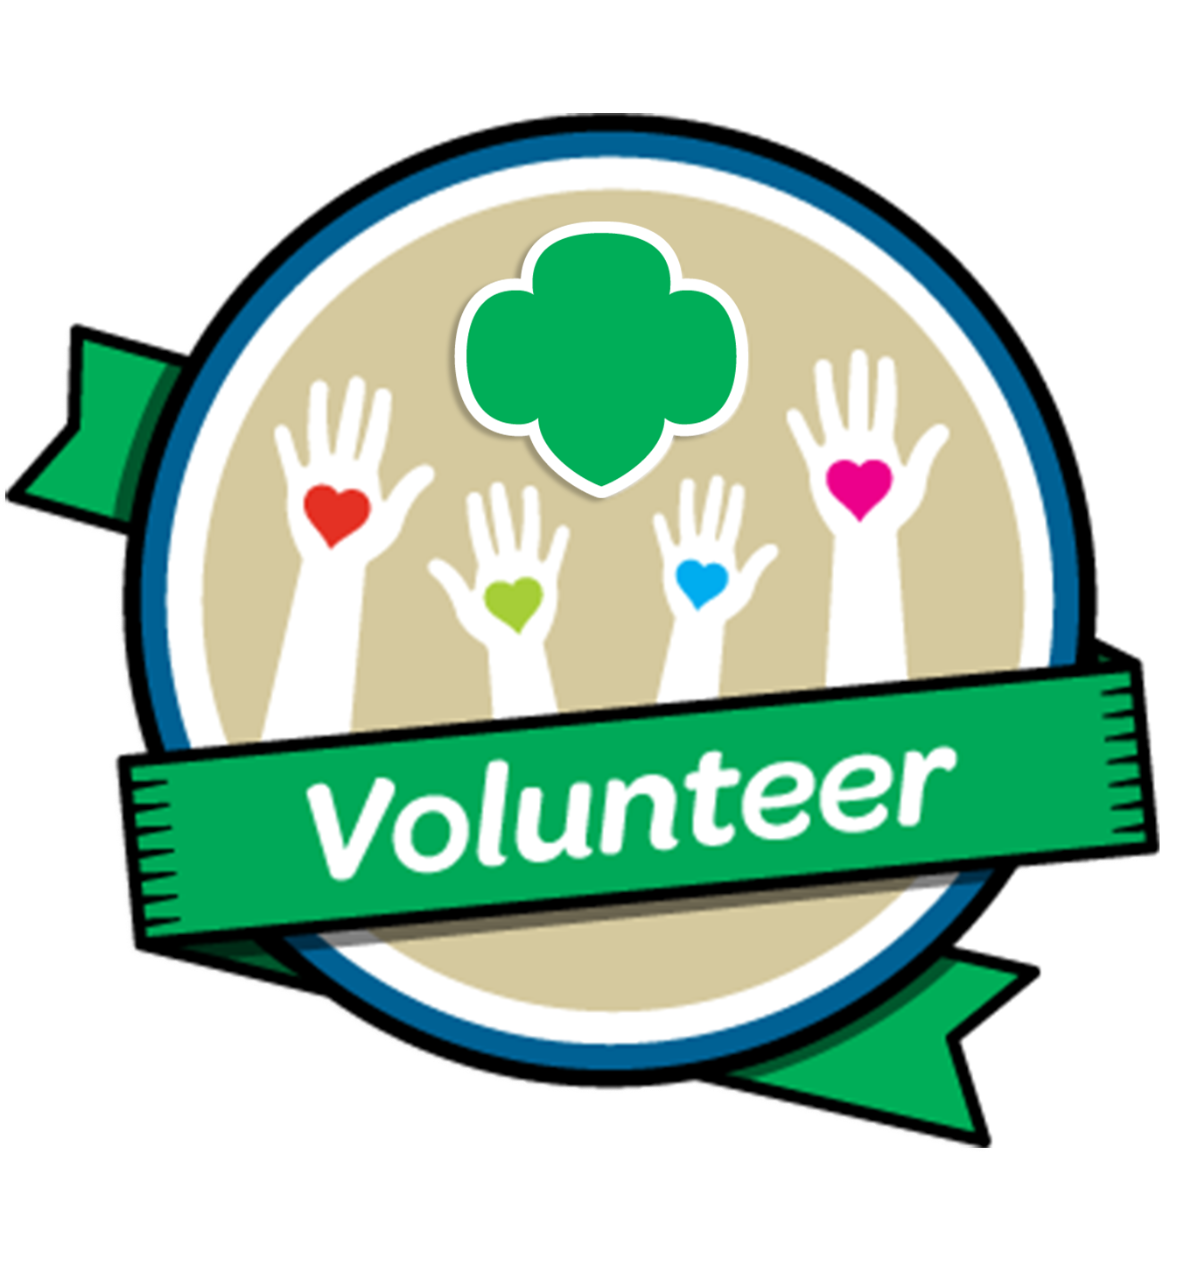 Volunteer at Girl Scouts in the Heart of Pennsylvania